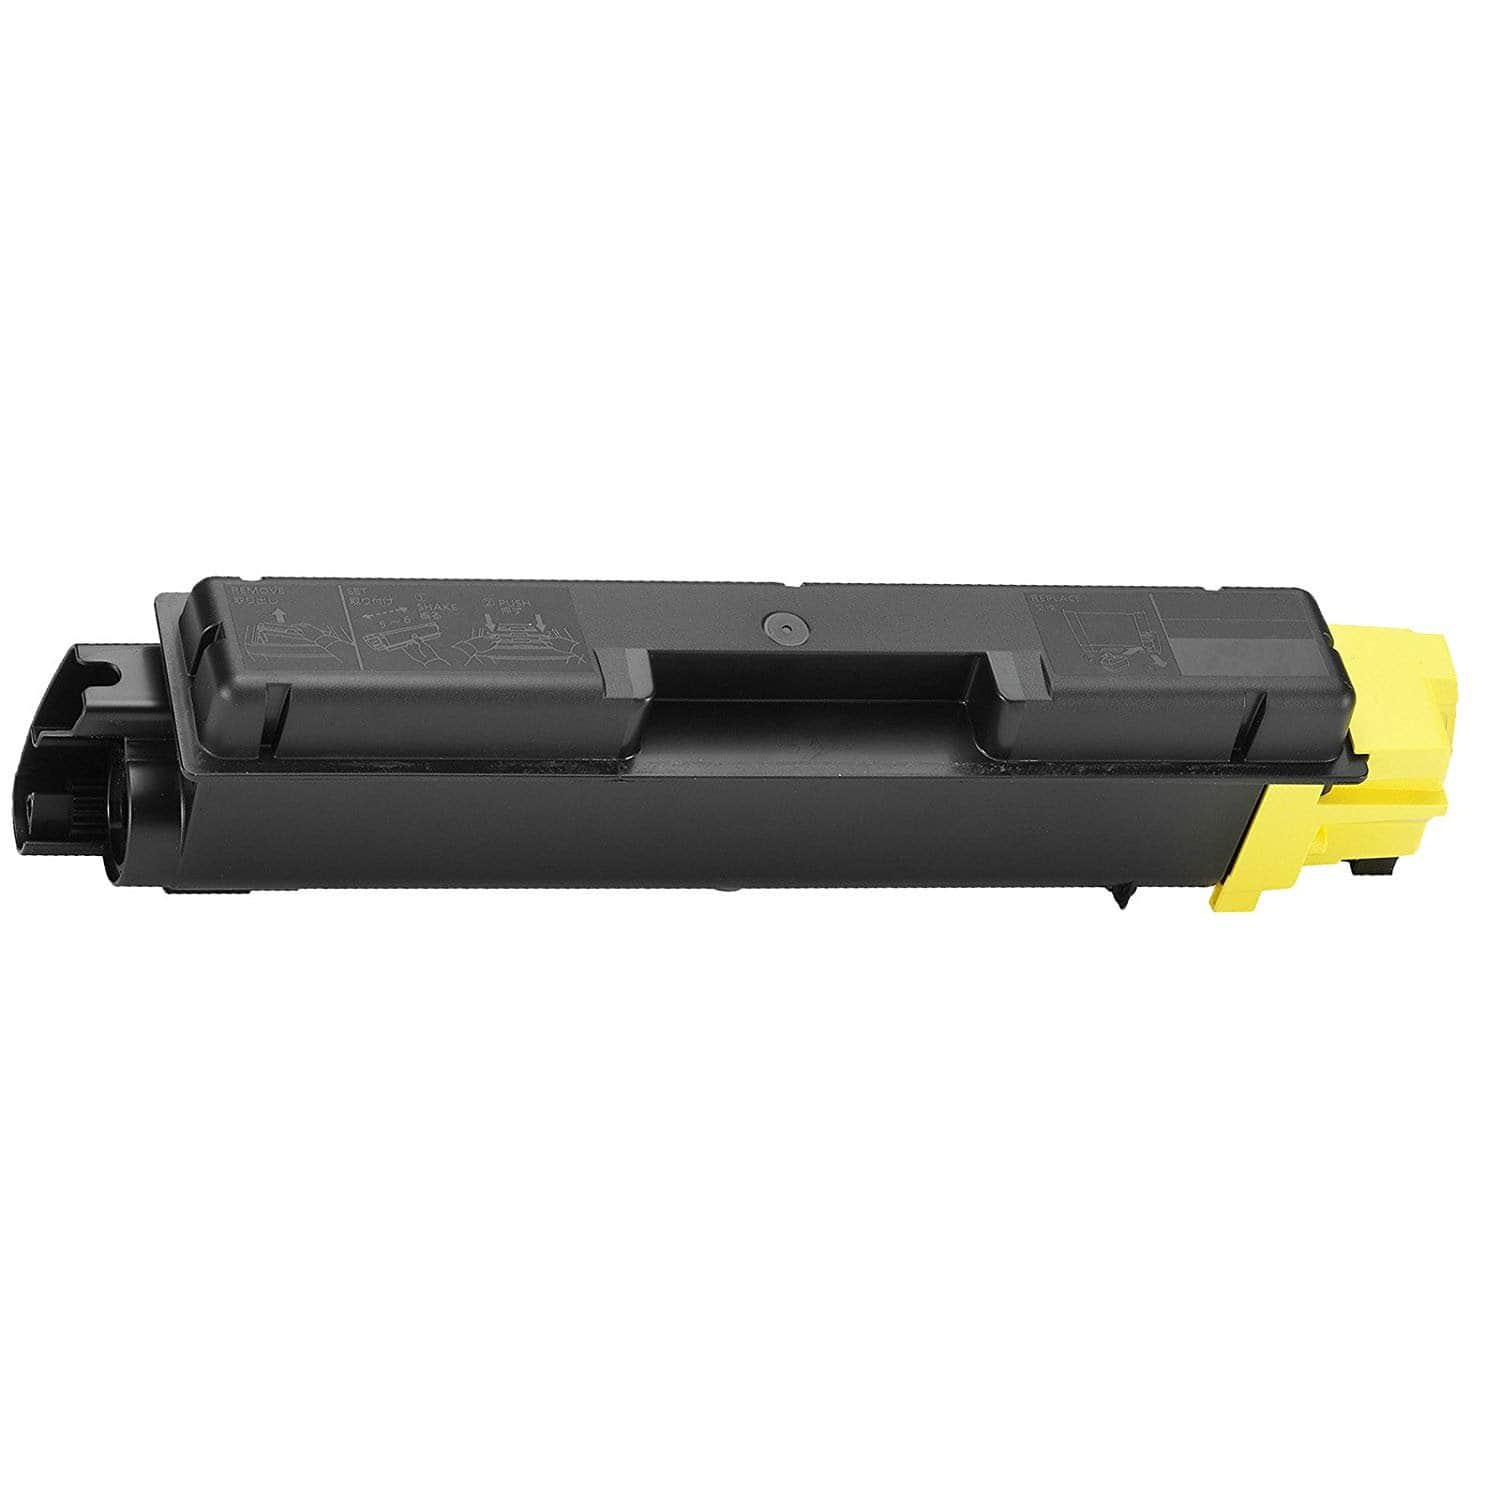 TK-592Y Toner Cartridge - Kyocera Mita Compatible (Yellow)